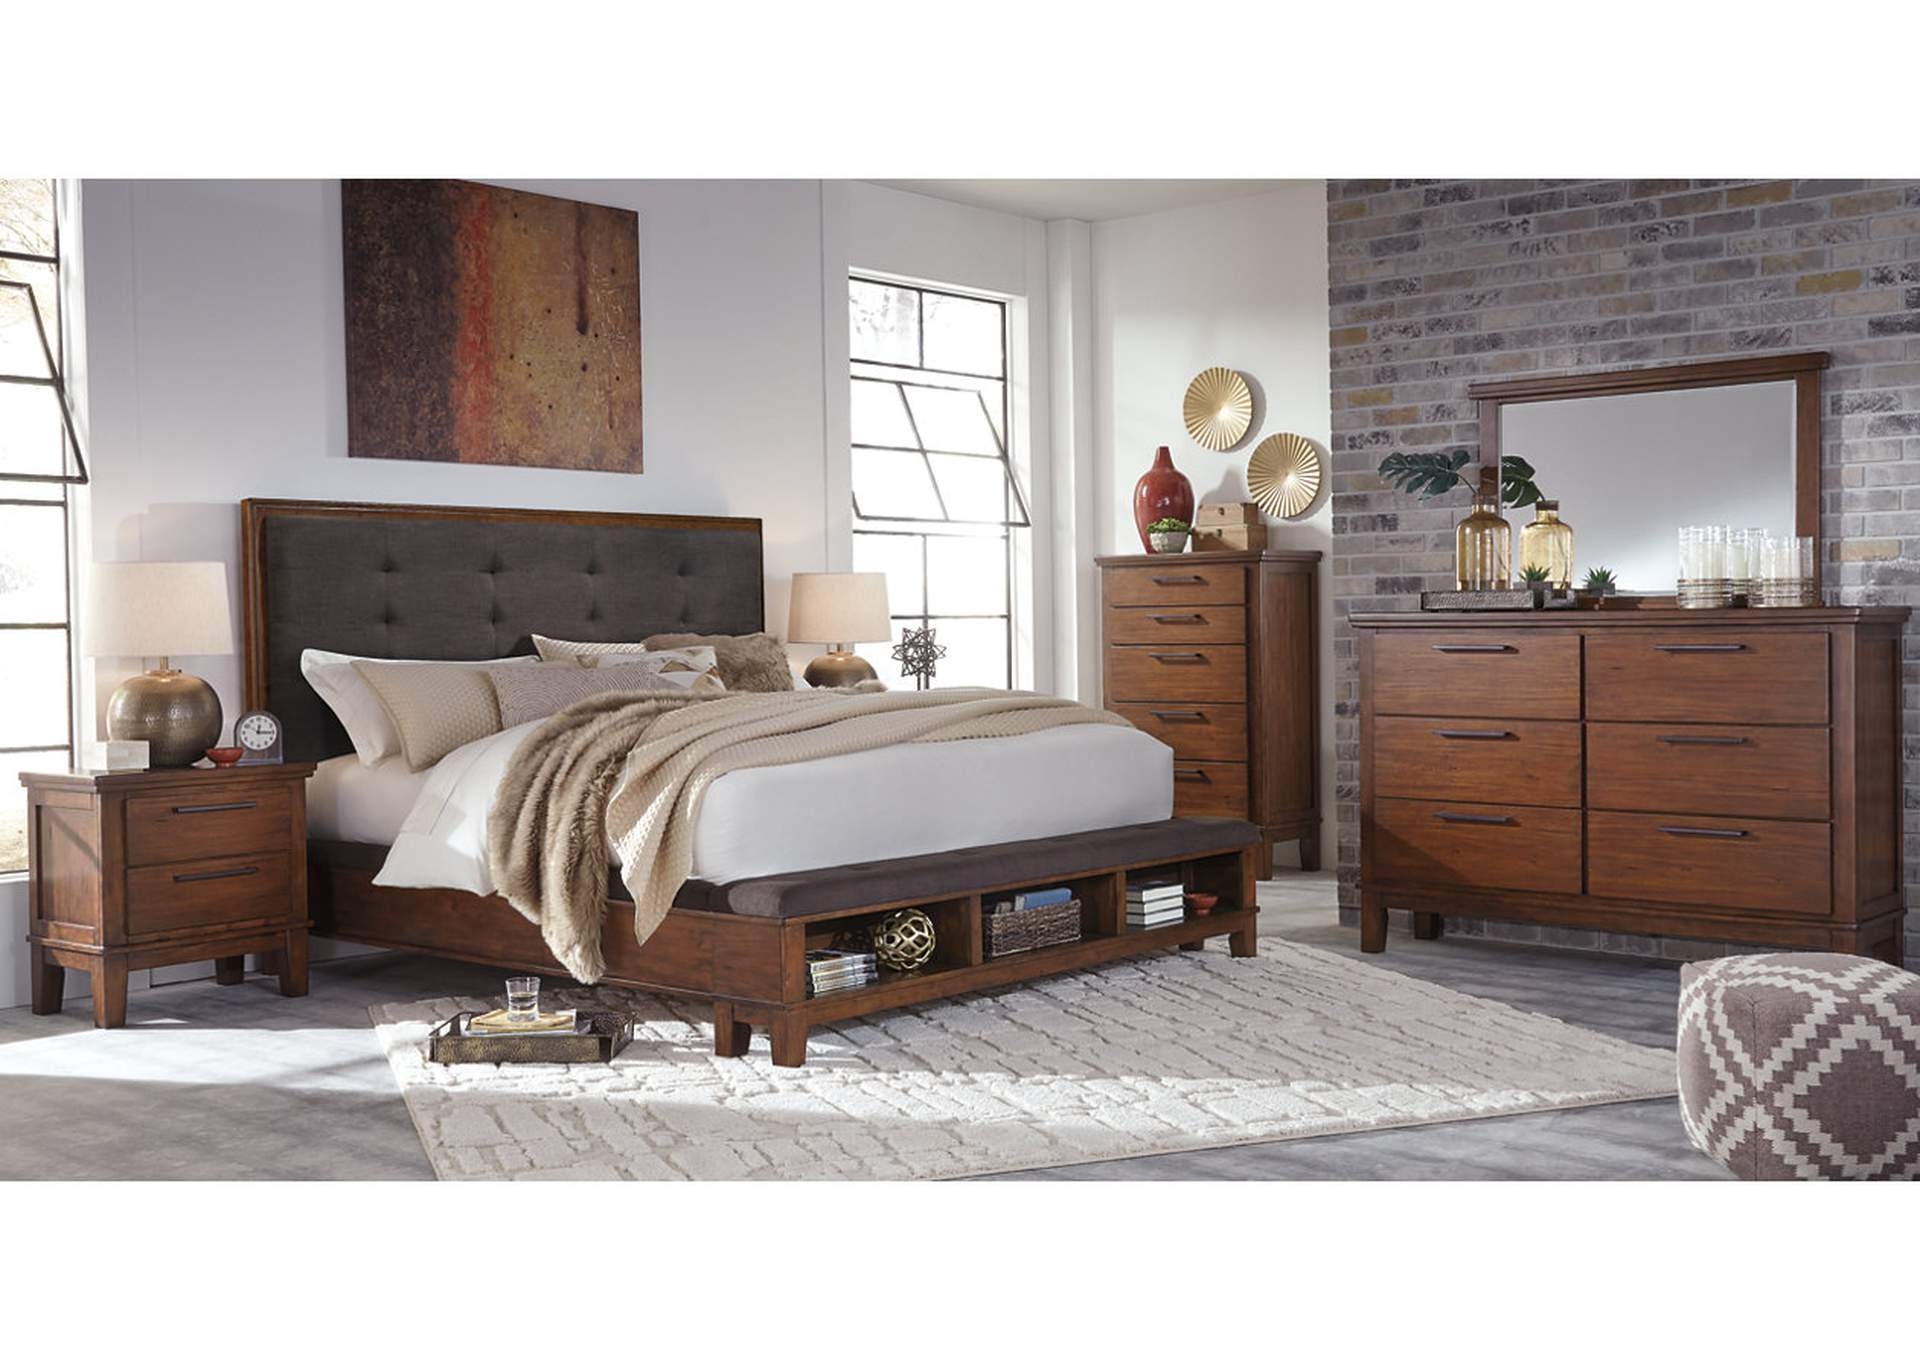 Ralene Medium Brown King Upholstered Storage Bed w/Dresser, Mirror, Drawer Chest & Nightstand,Signature Design By Ashley